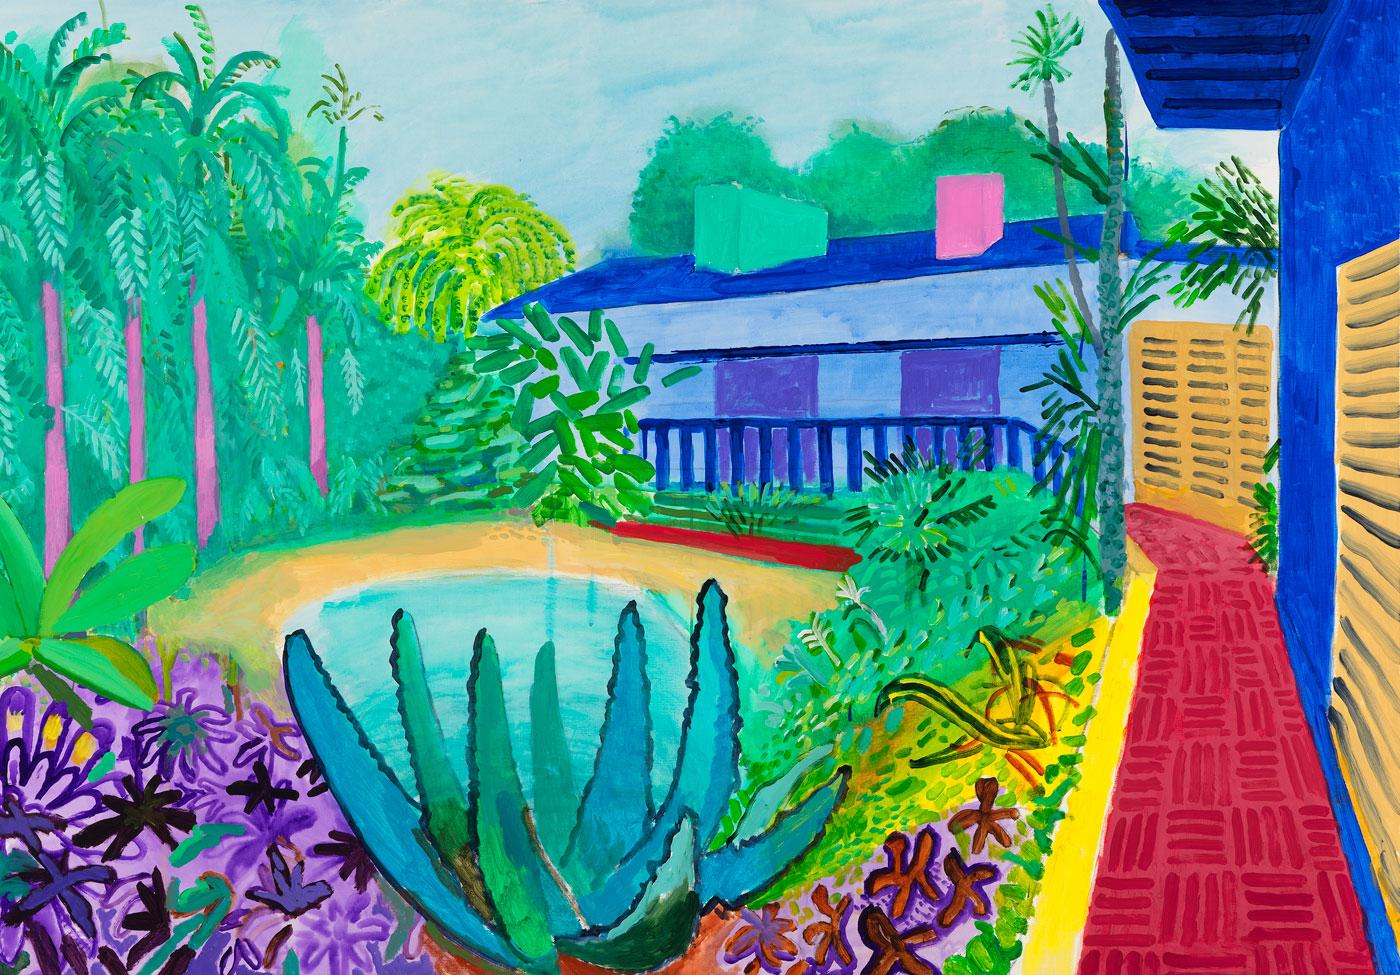 Garden by David Hockney, 2015.